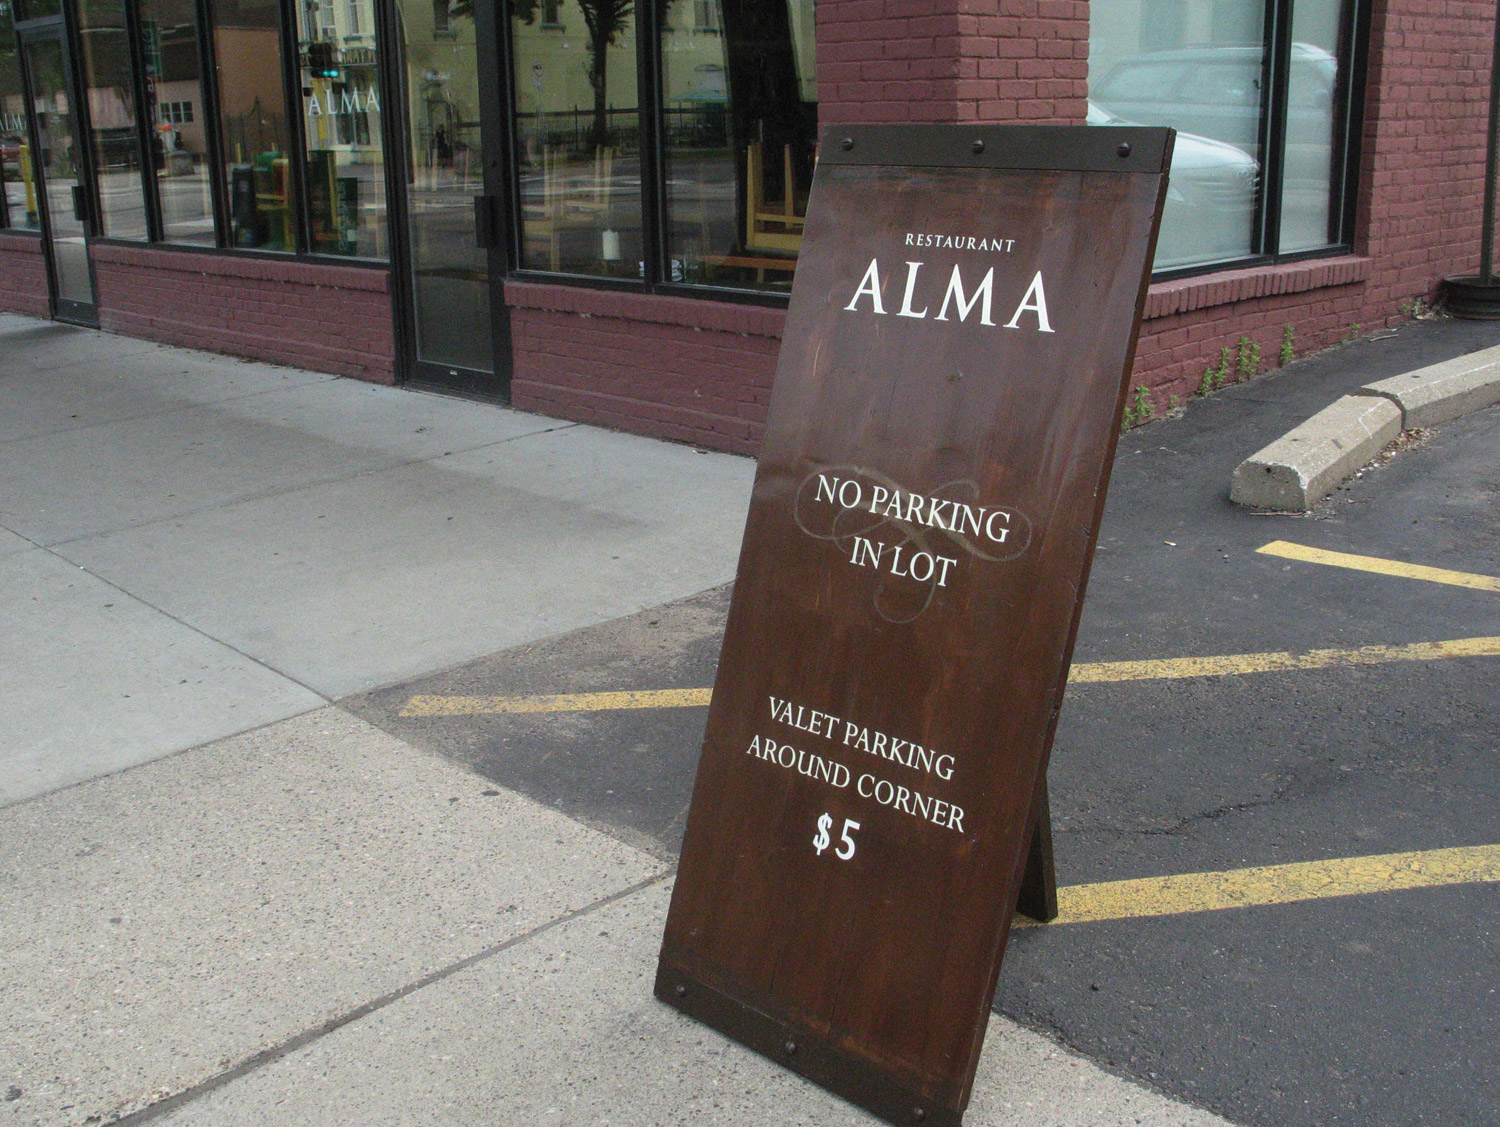 Restaurant-Alma-Sign-00.jpg